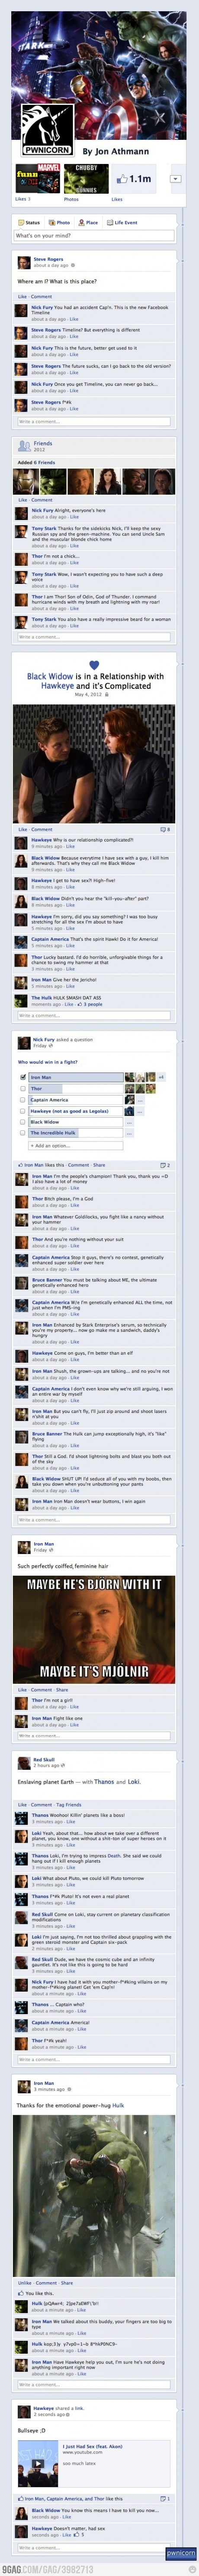 The Avengers! :D totally read this all in their respective voices.